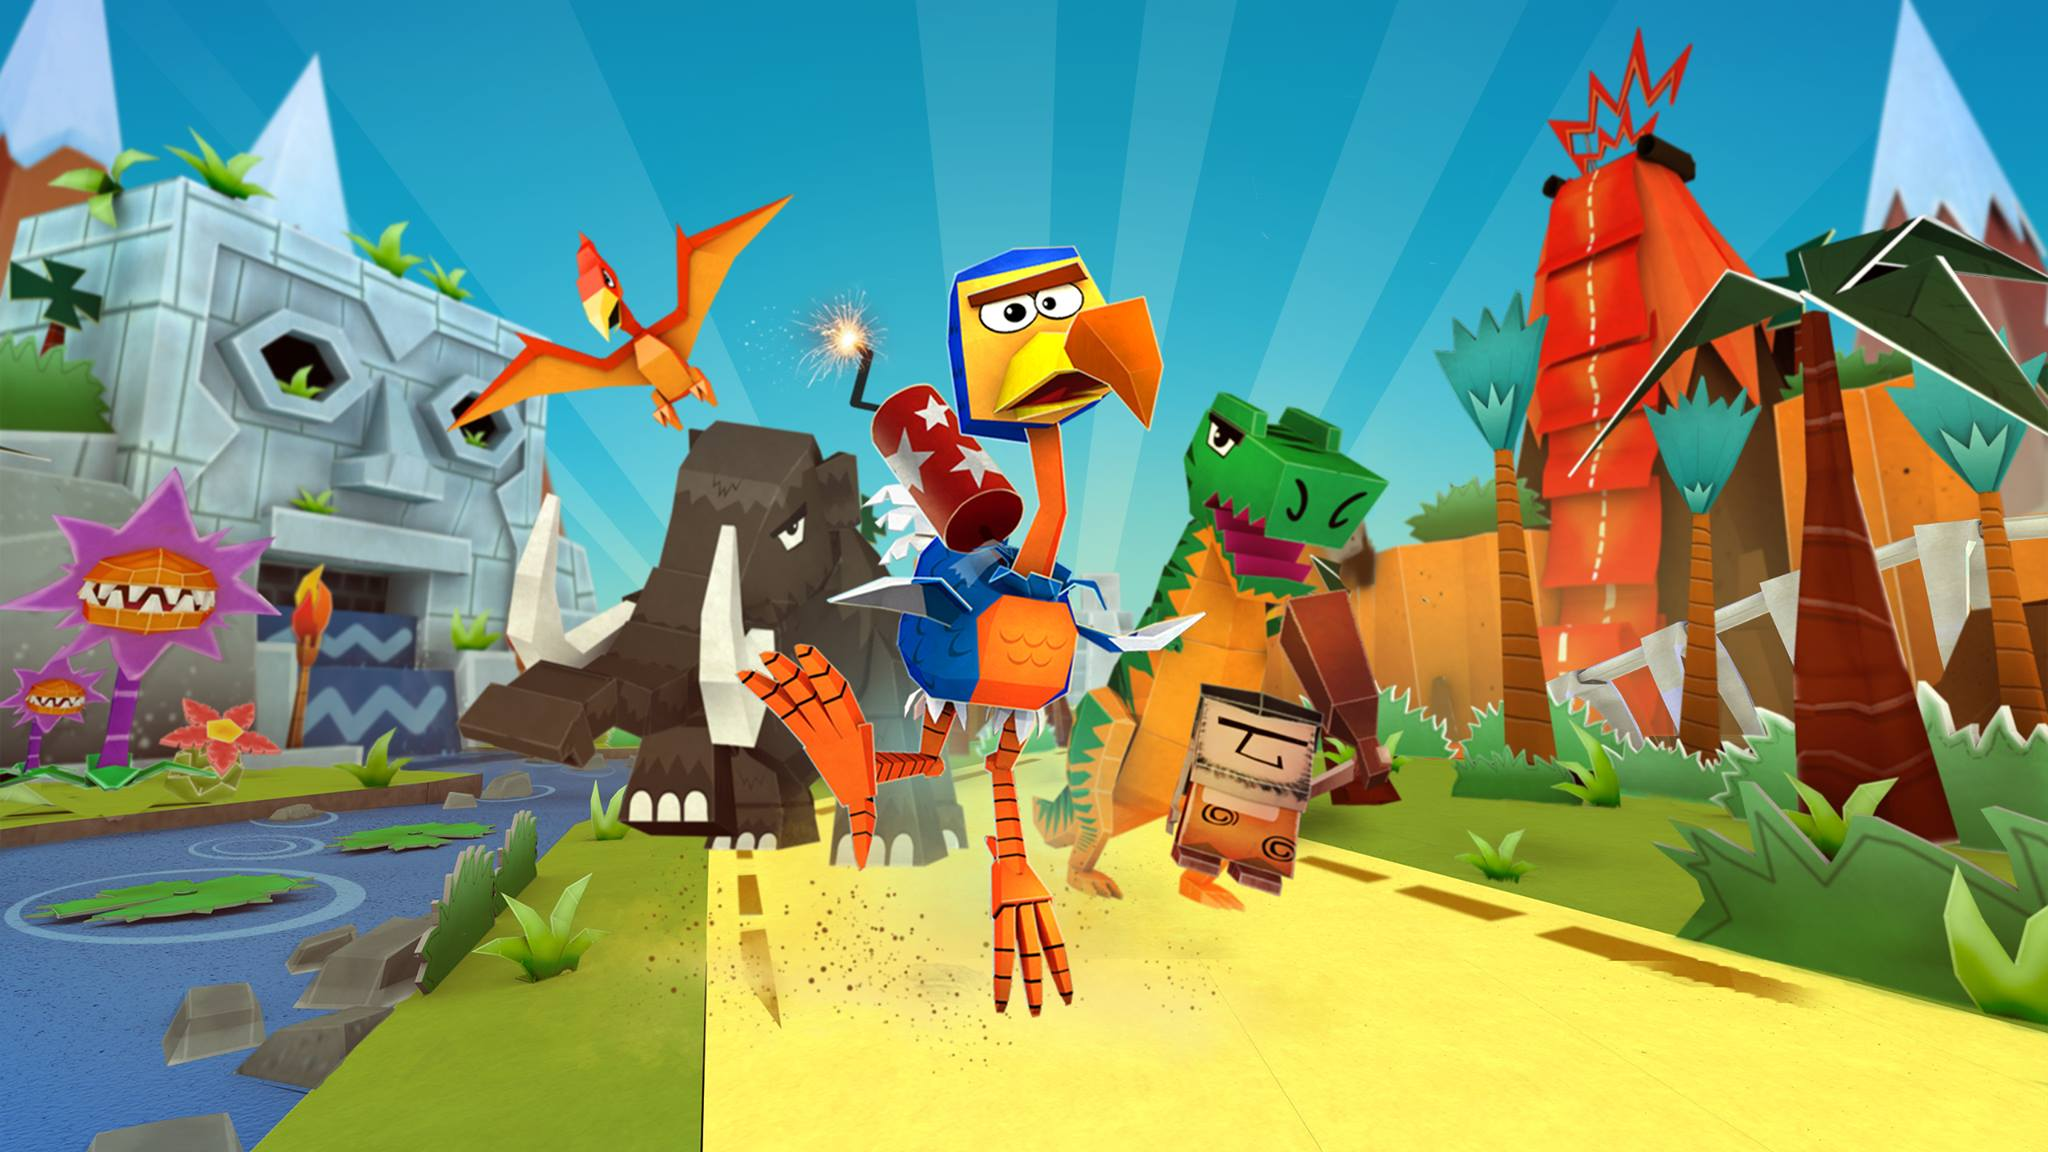 Cartoon Survivor has all the danger and vibrancy of Looney Tunes with added explosive dodo